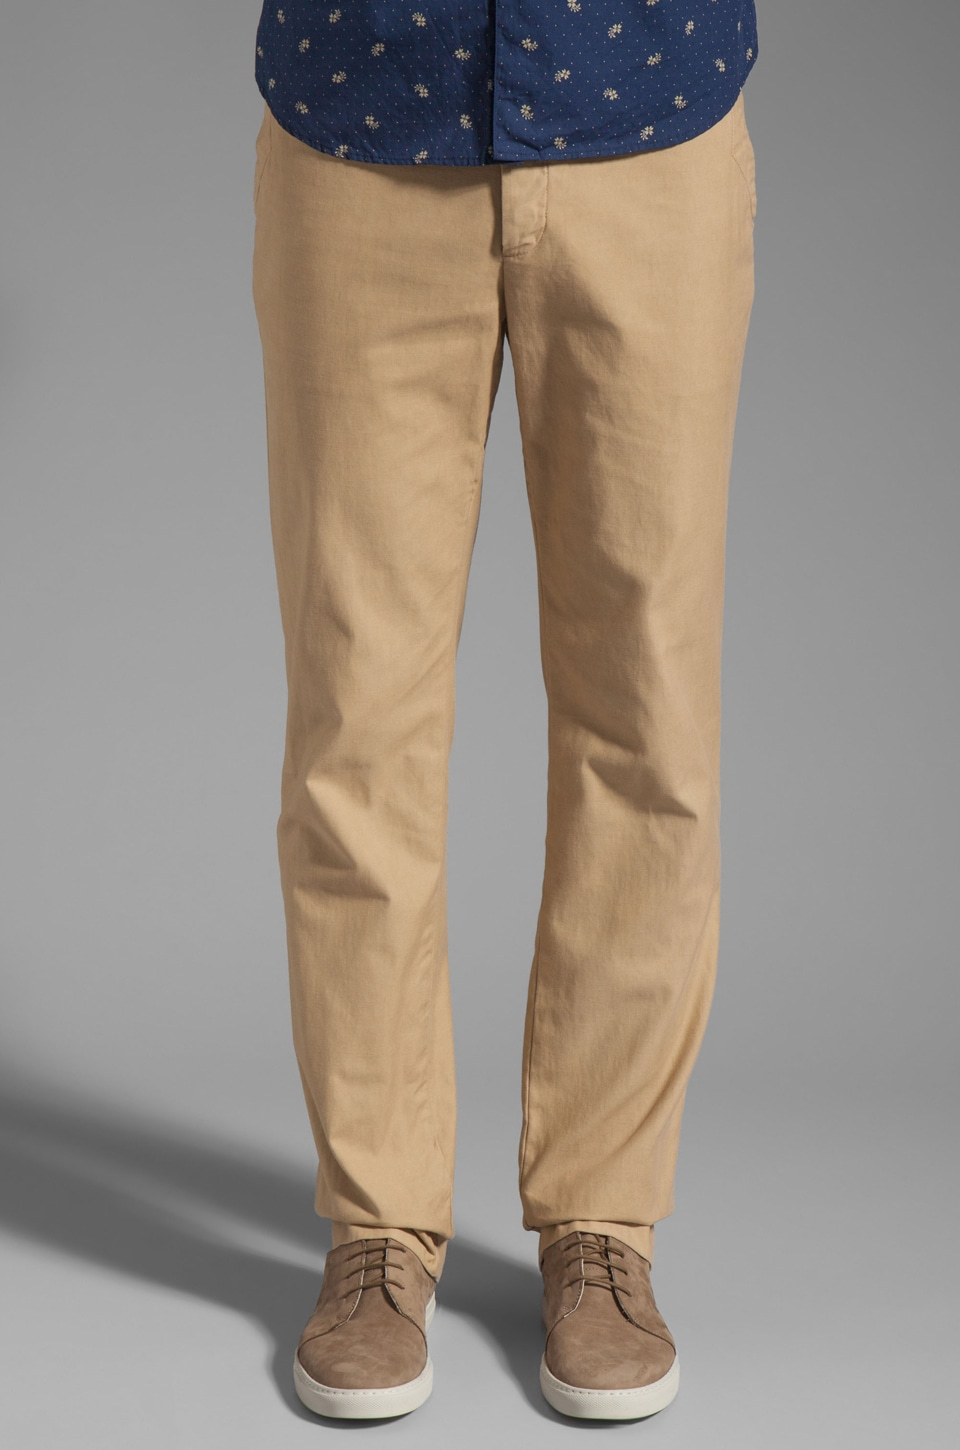 Steven Alan Saratoga Pant in Saddle